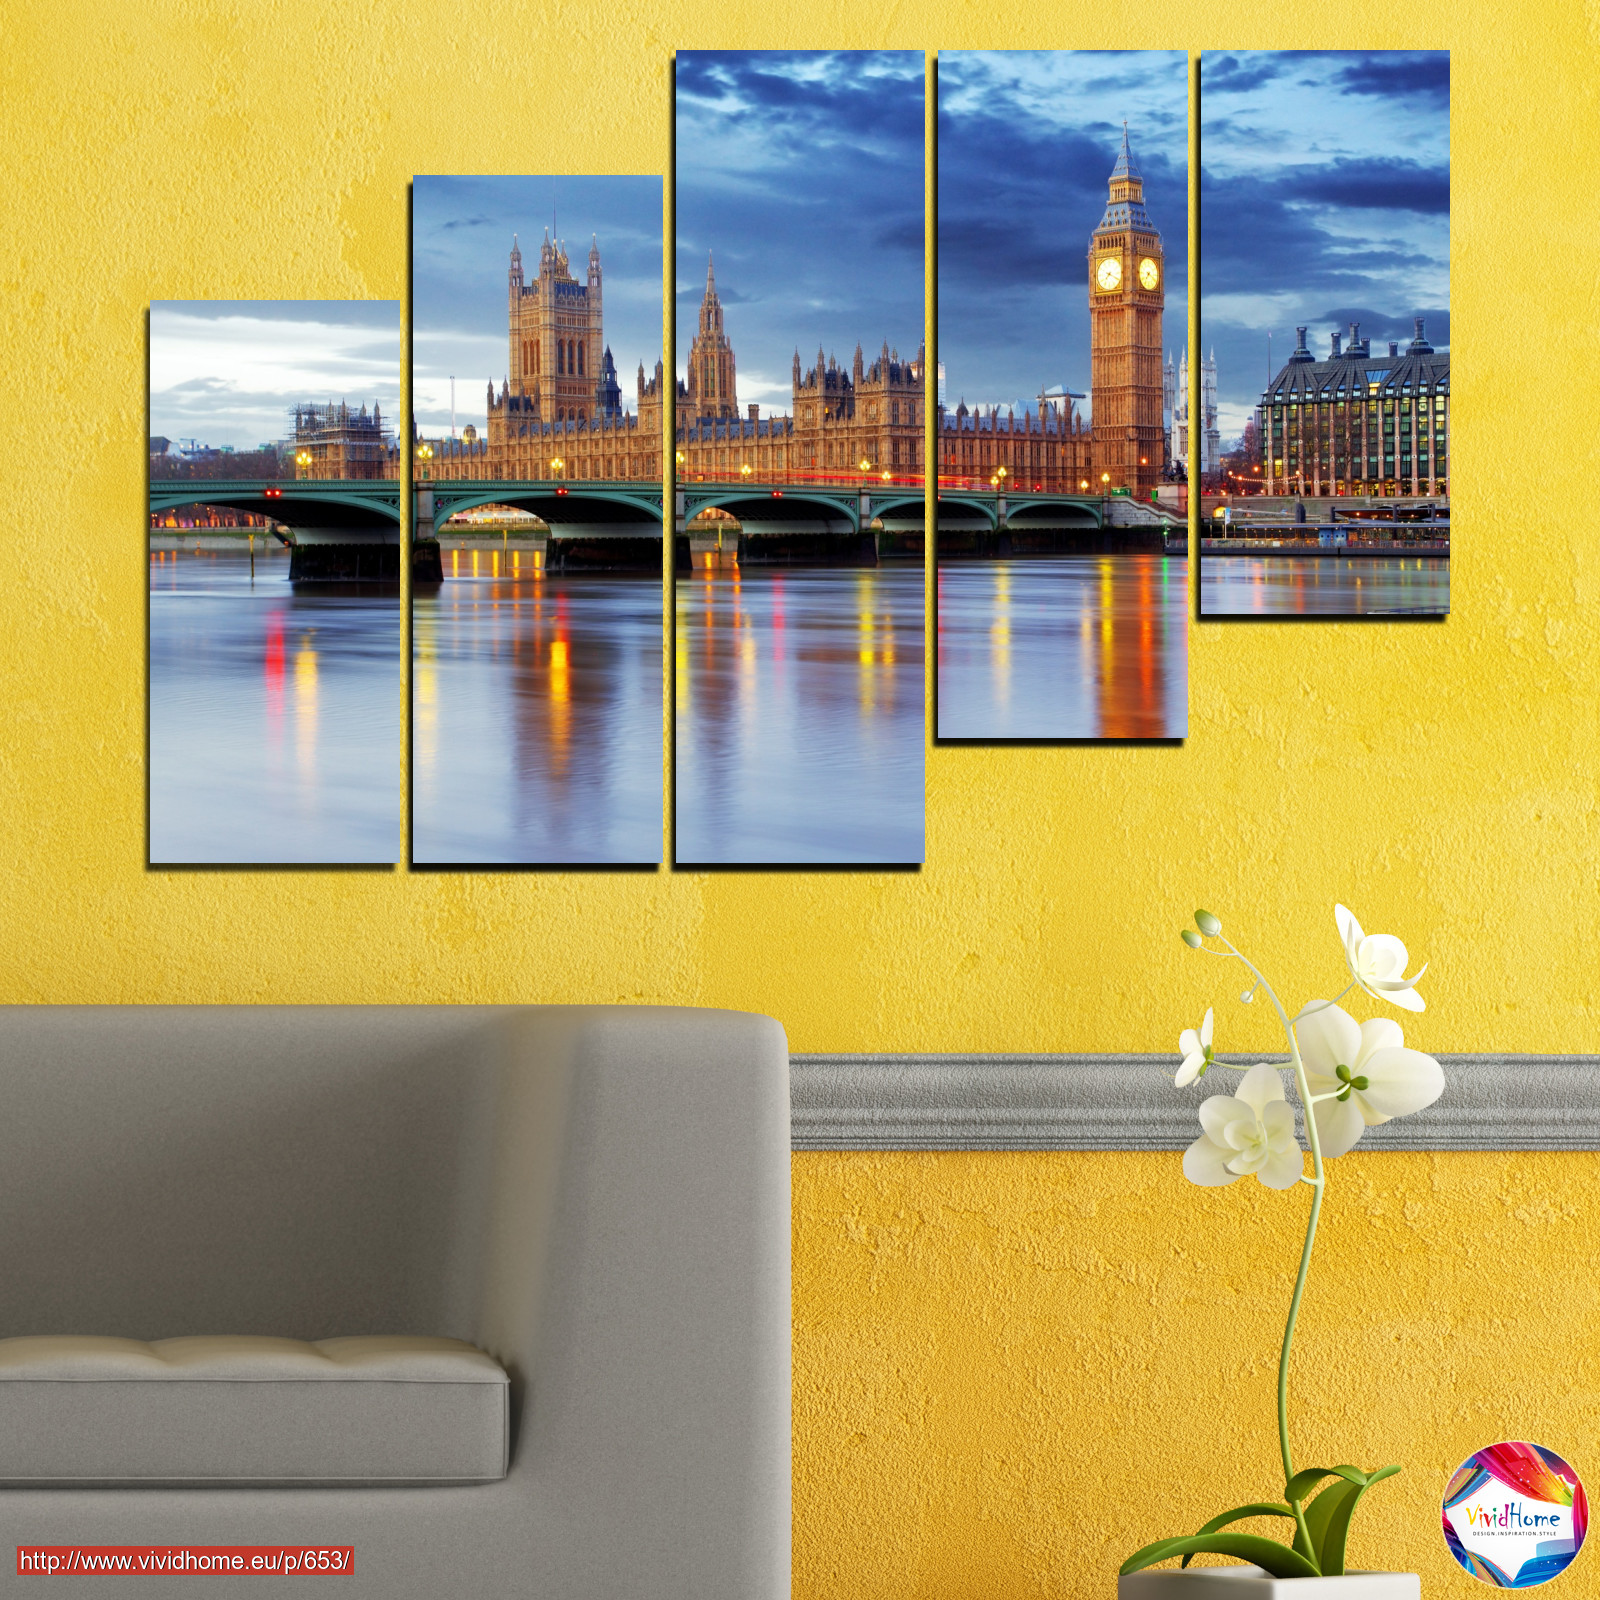 Water, City, London, Bridge, Great britain, Big ben №0653